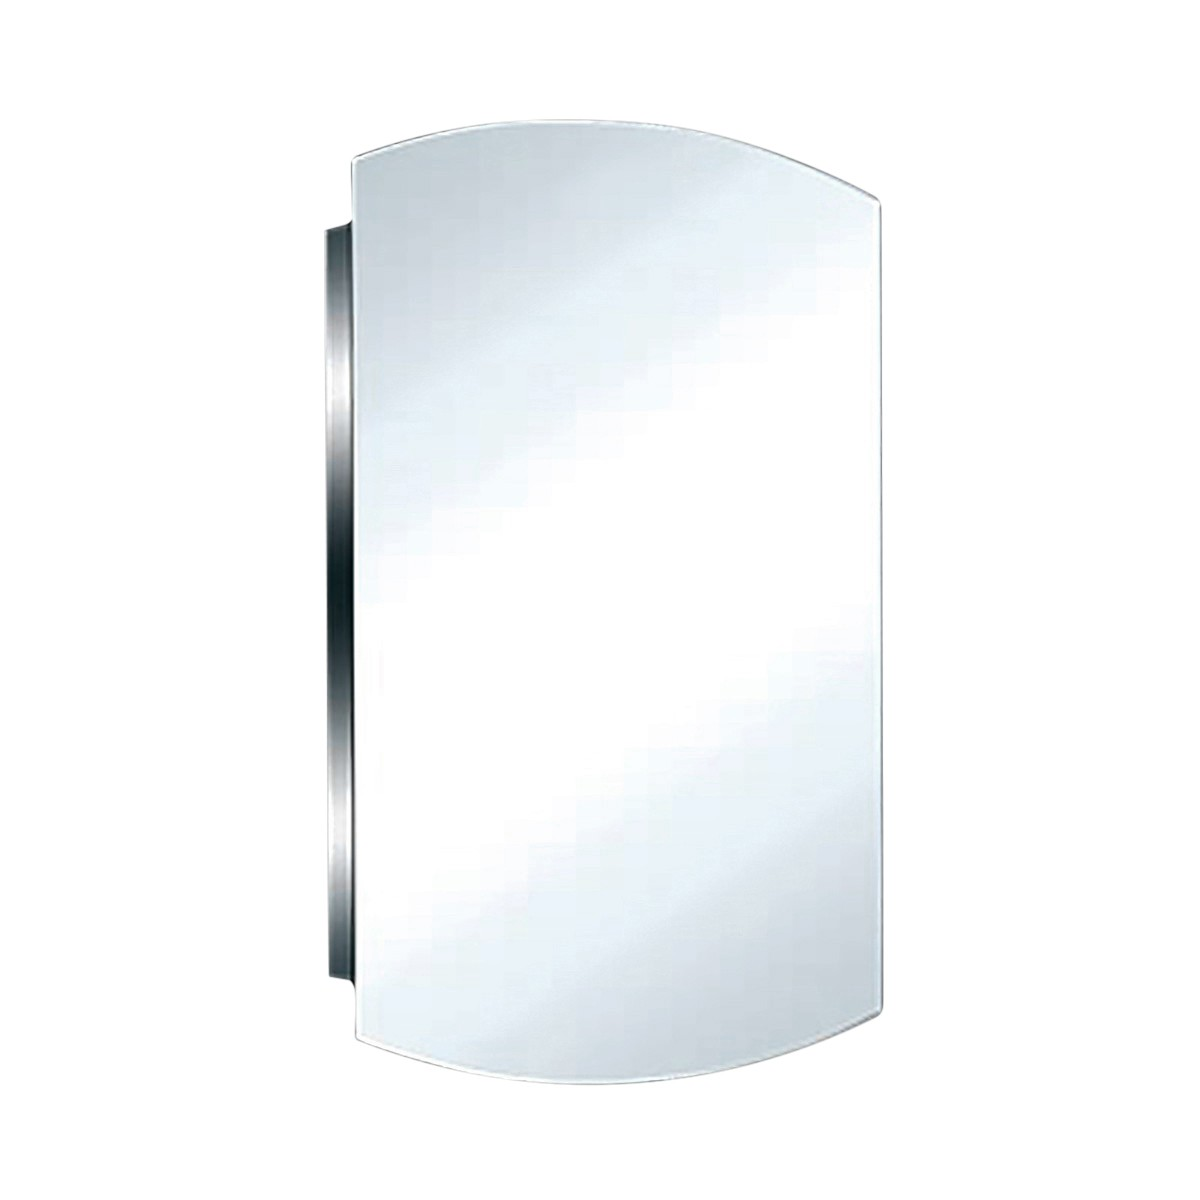 24 Stainless Steel Medicine Cabinet Mirrored Wall Mount